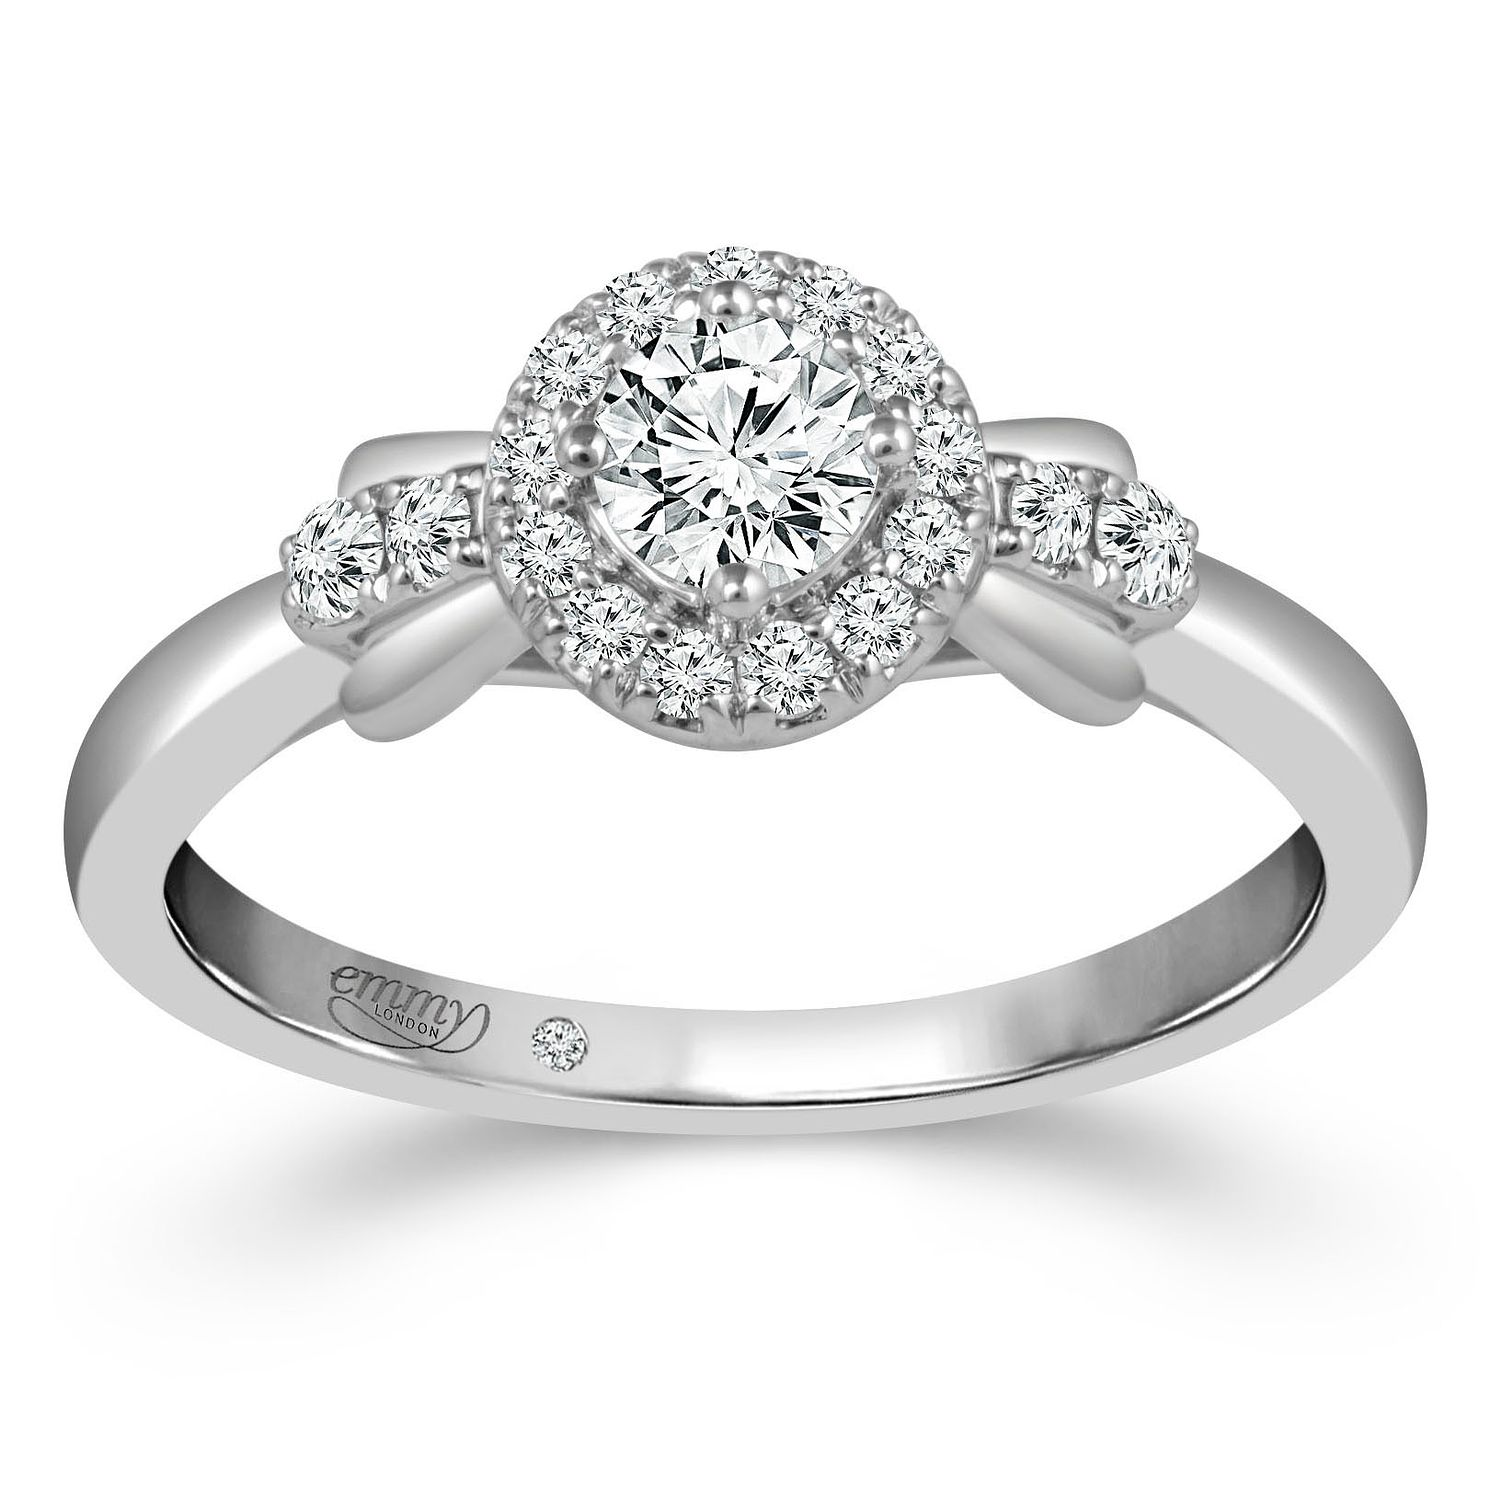 Emmy London Palladium 1/2ct Diamond Round Halo Ring - Product number 4473949